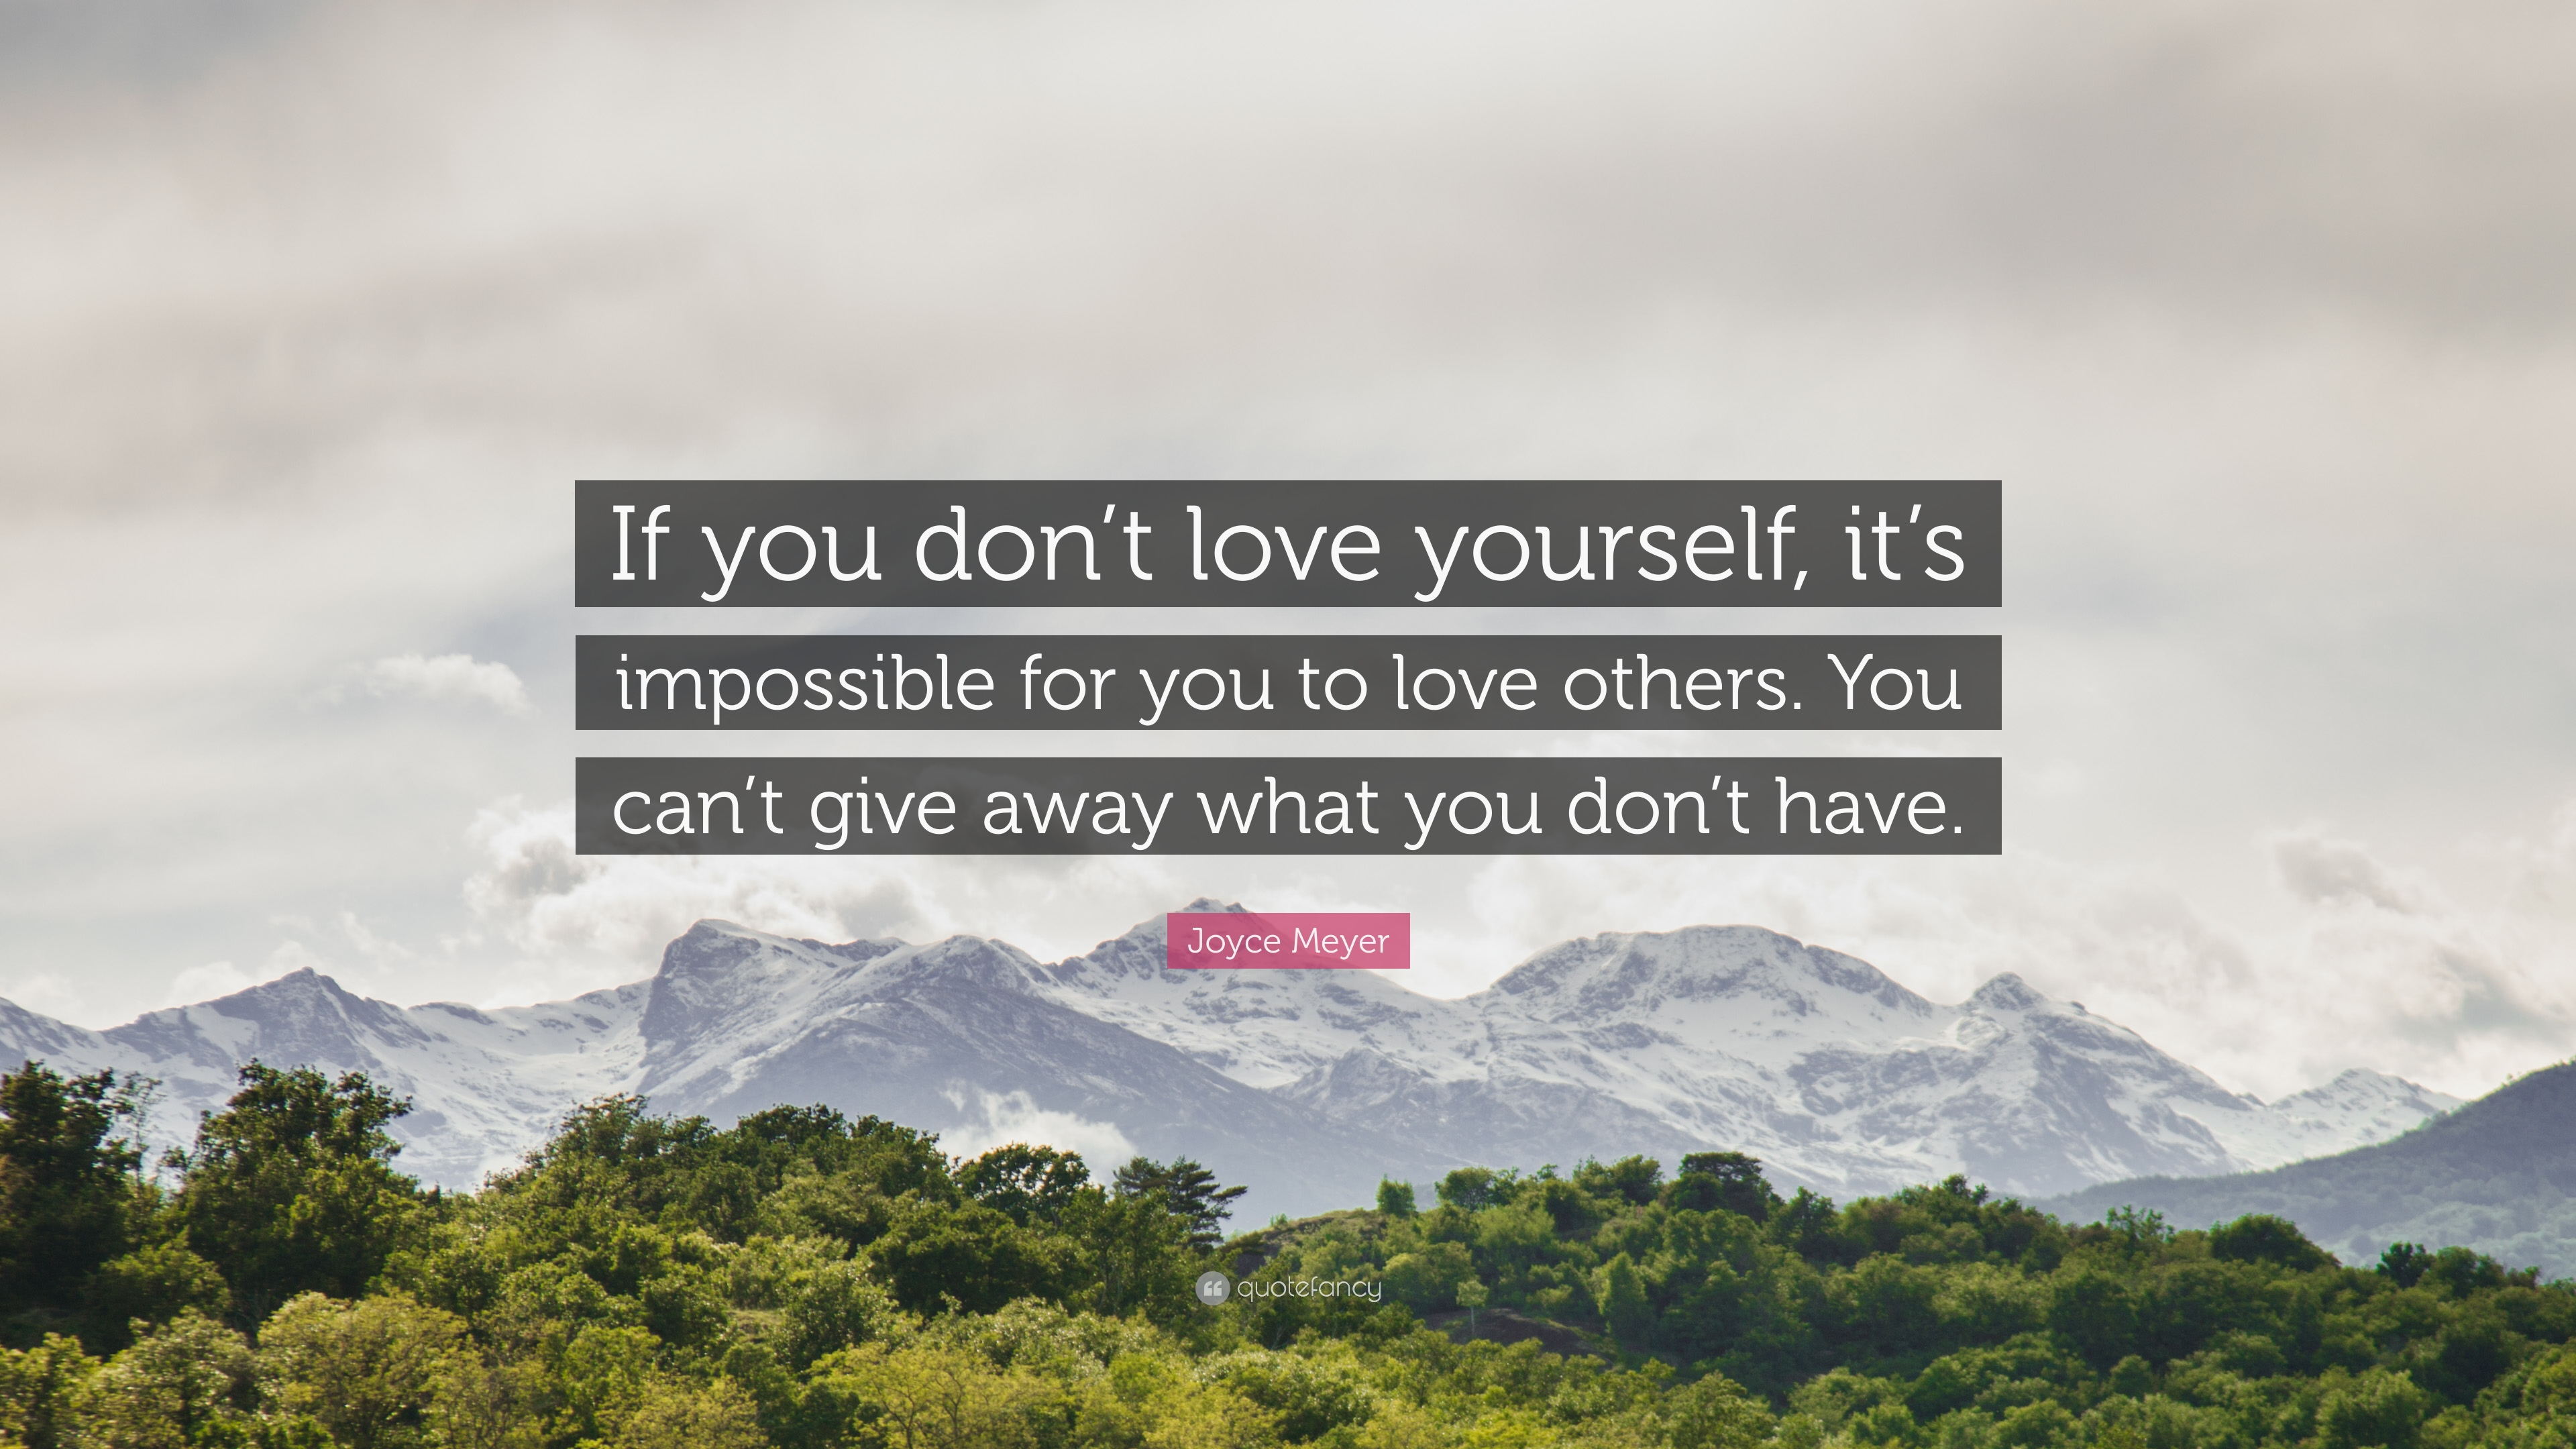 Superior Joyce Meyer Quote: U201cIf You Donu0027t Love Yourself, Itu0027s Impossible For